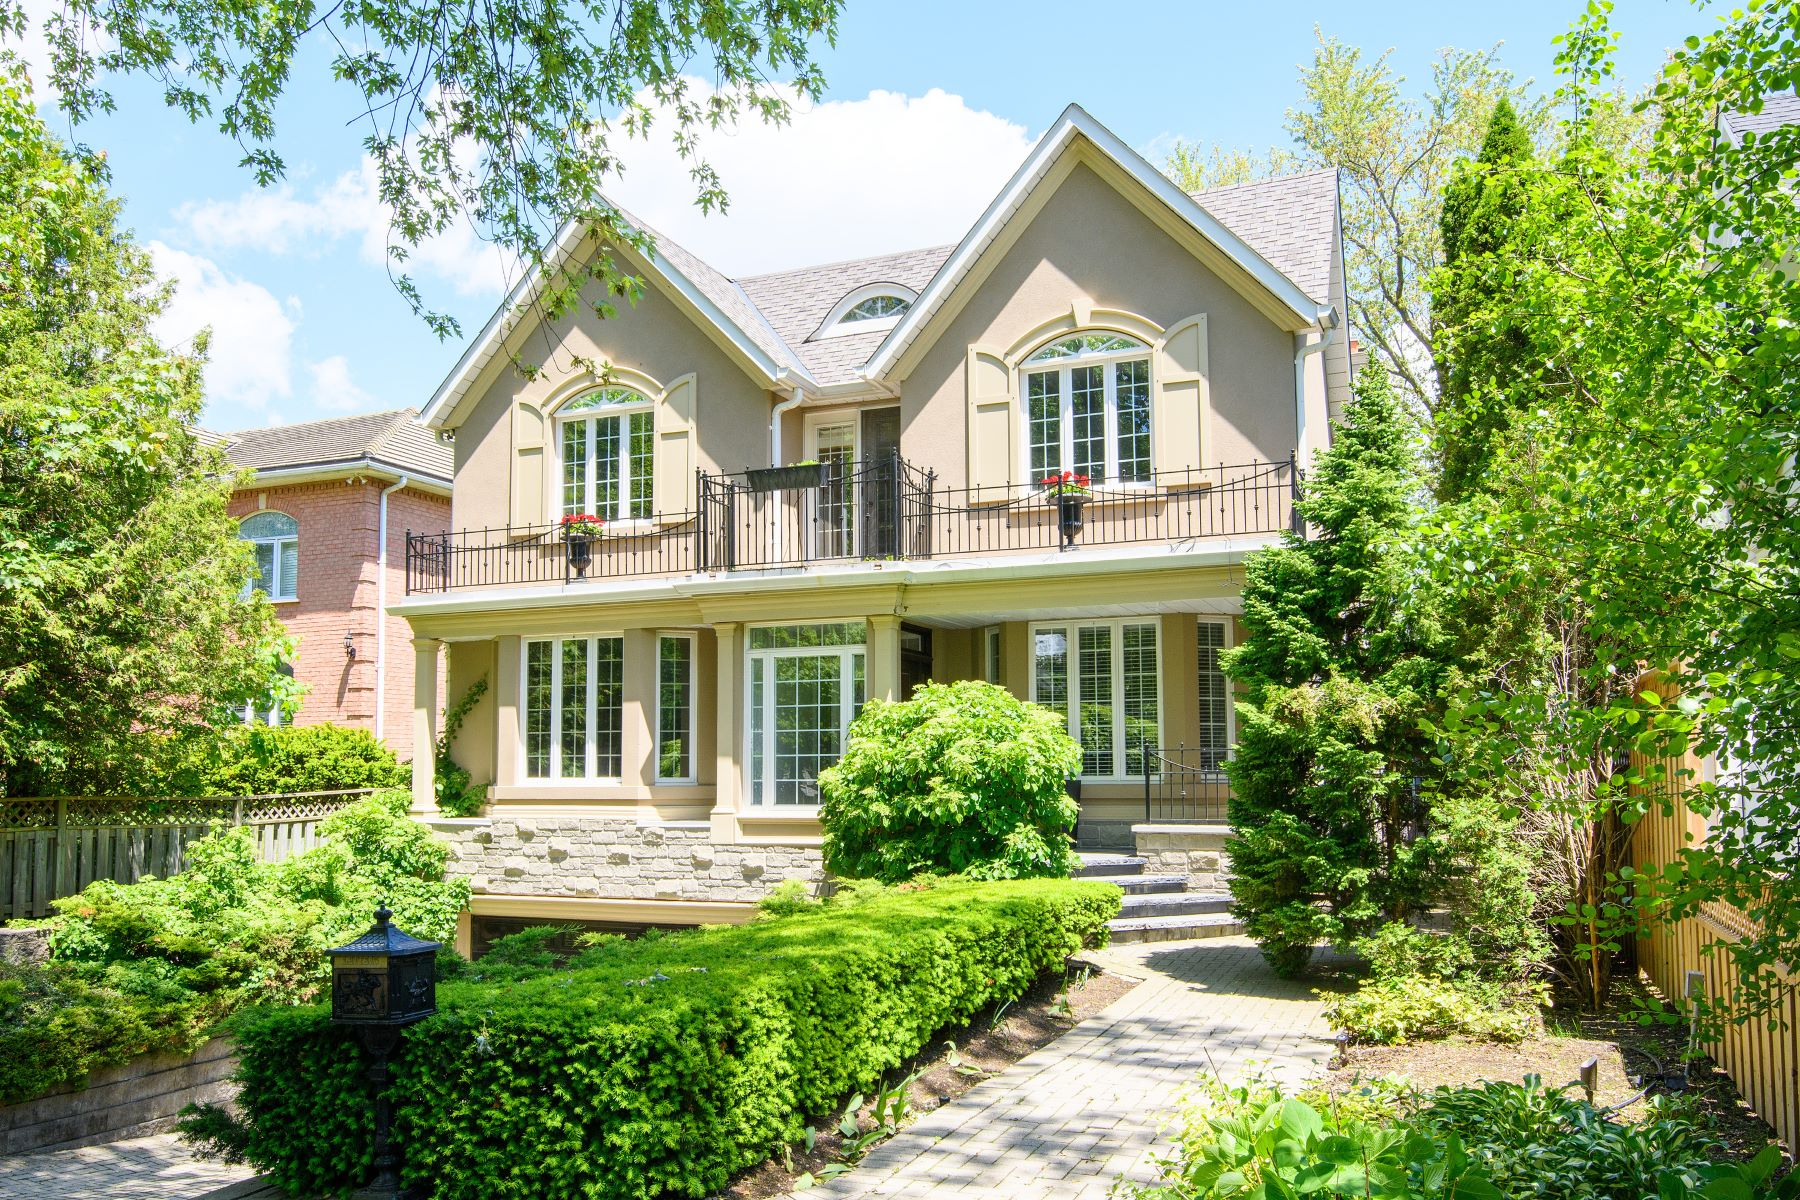 Single Family Homes for Sale at Spacious Family Home on Balsam 205 Balsam Drive Oakville, Ontario L6J 3X4 Canada